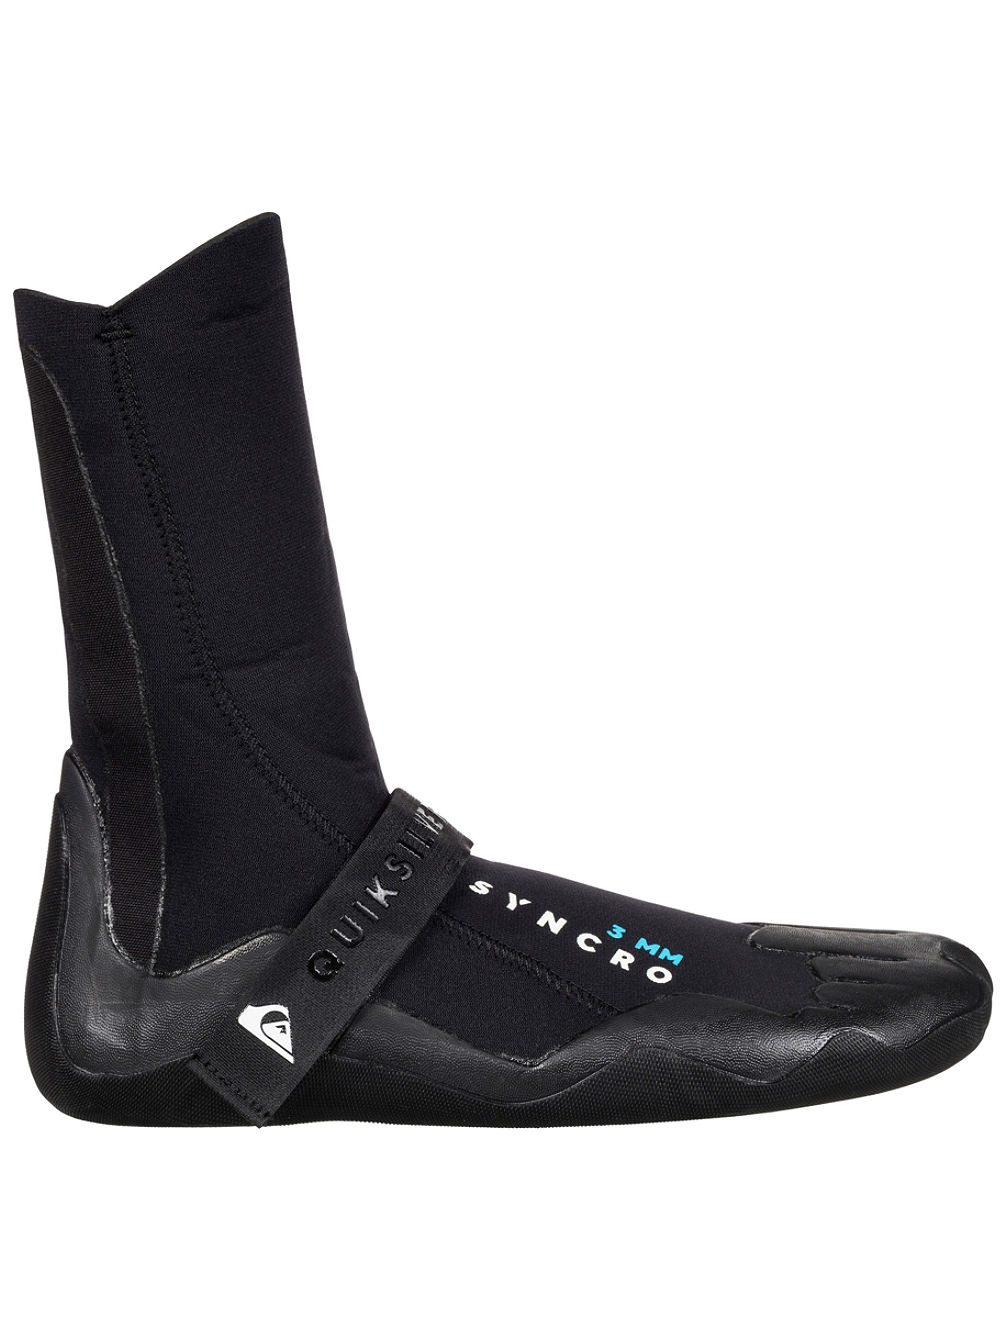 3.0 Syncro Round Toe Booties